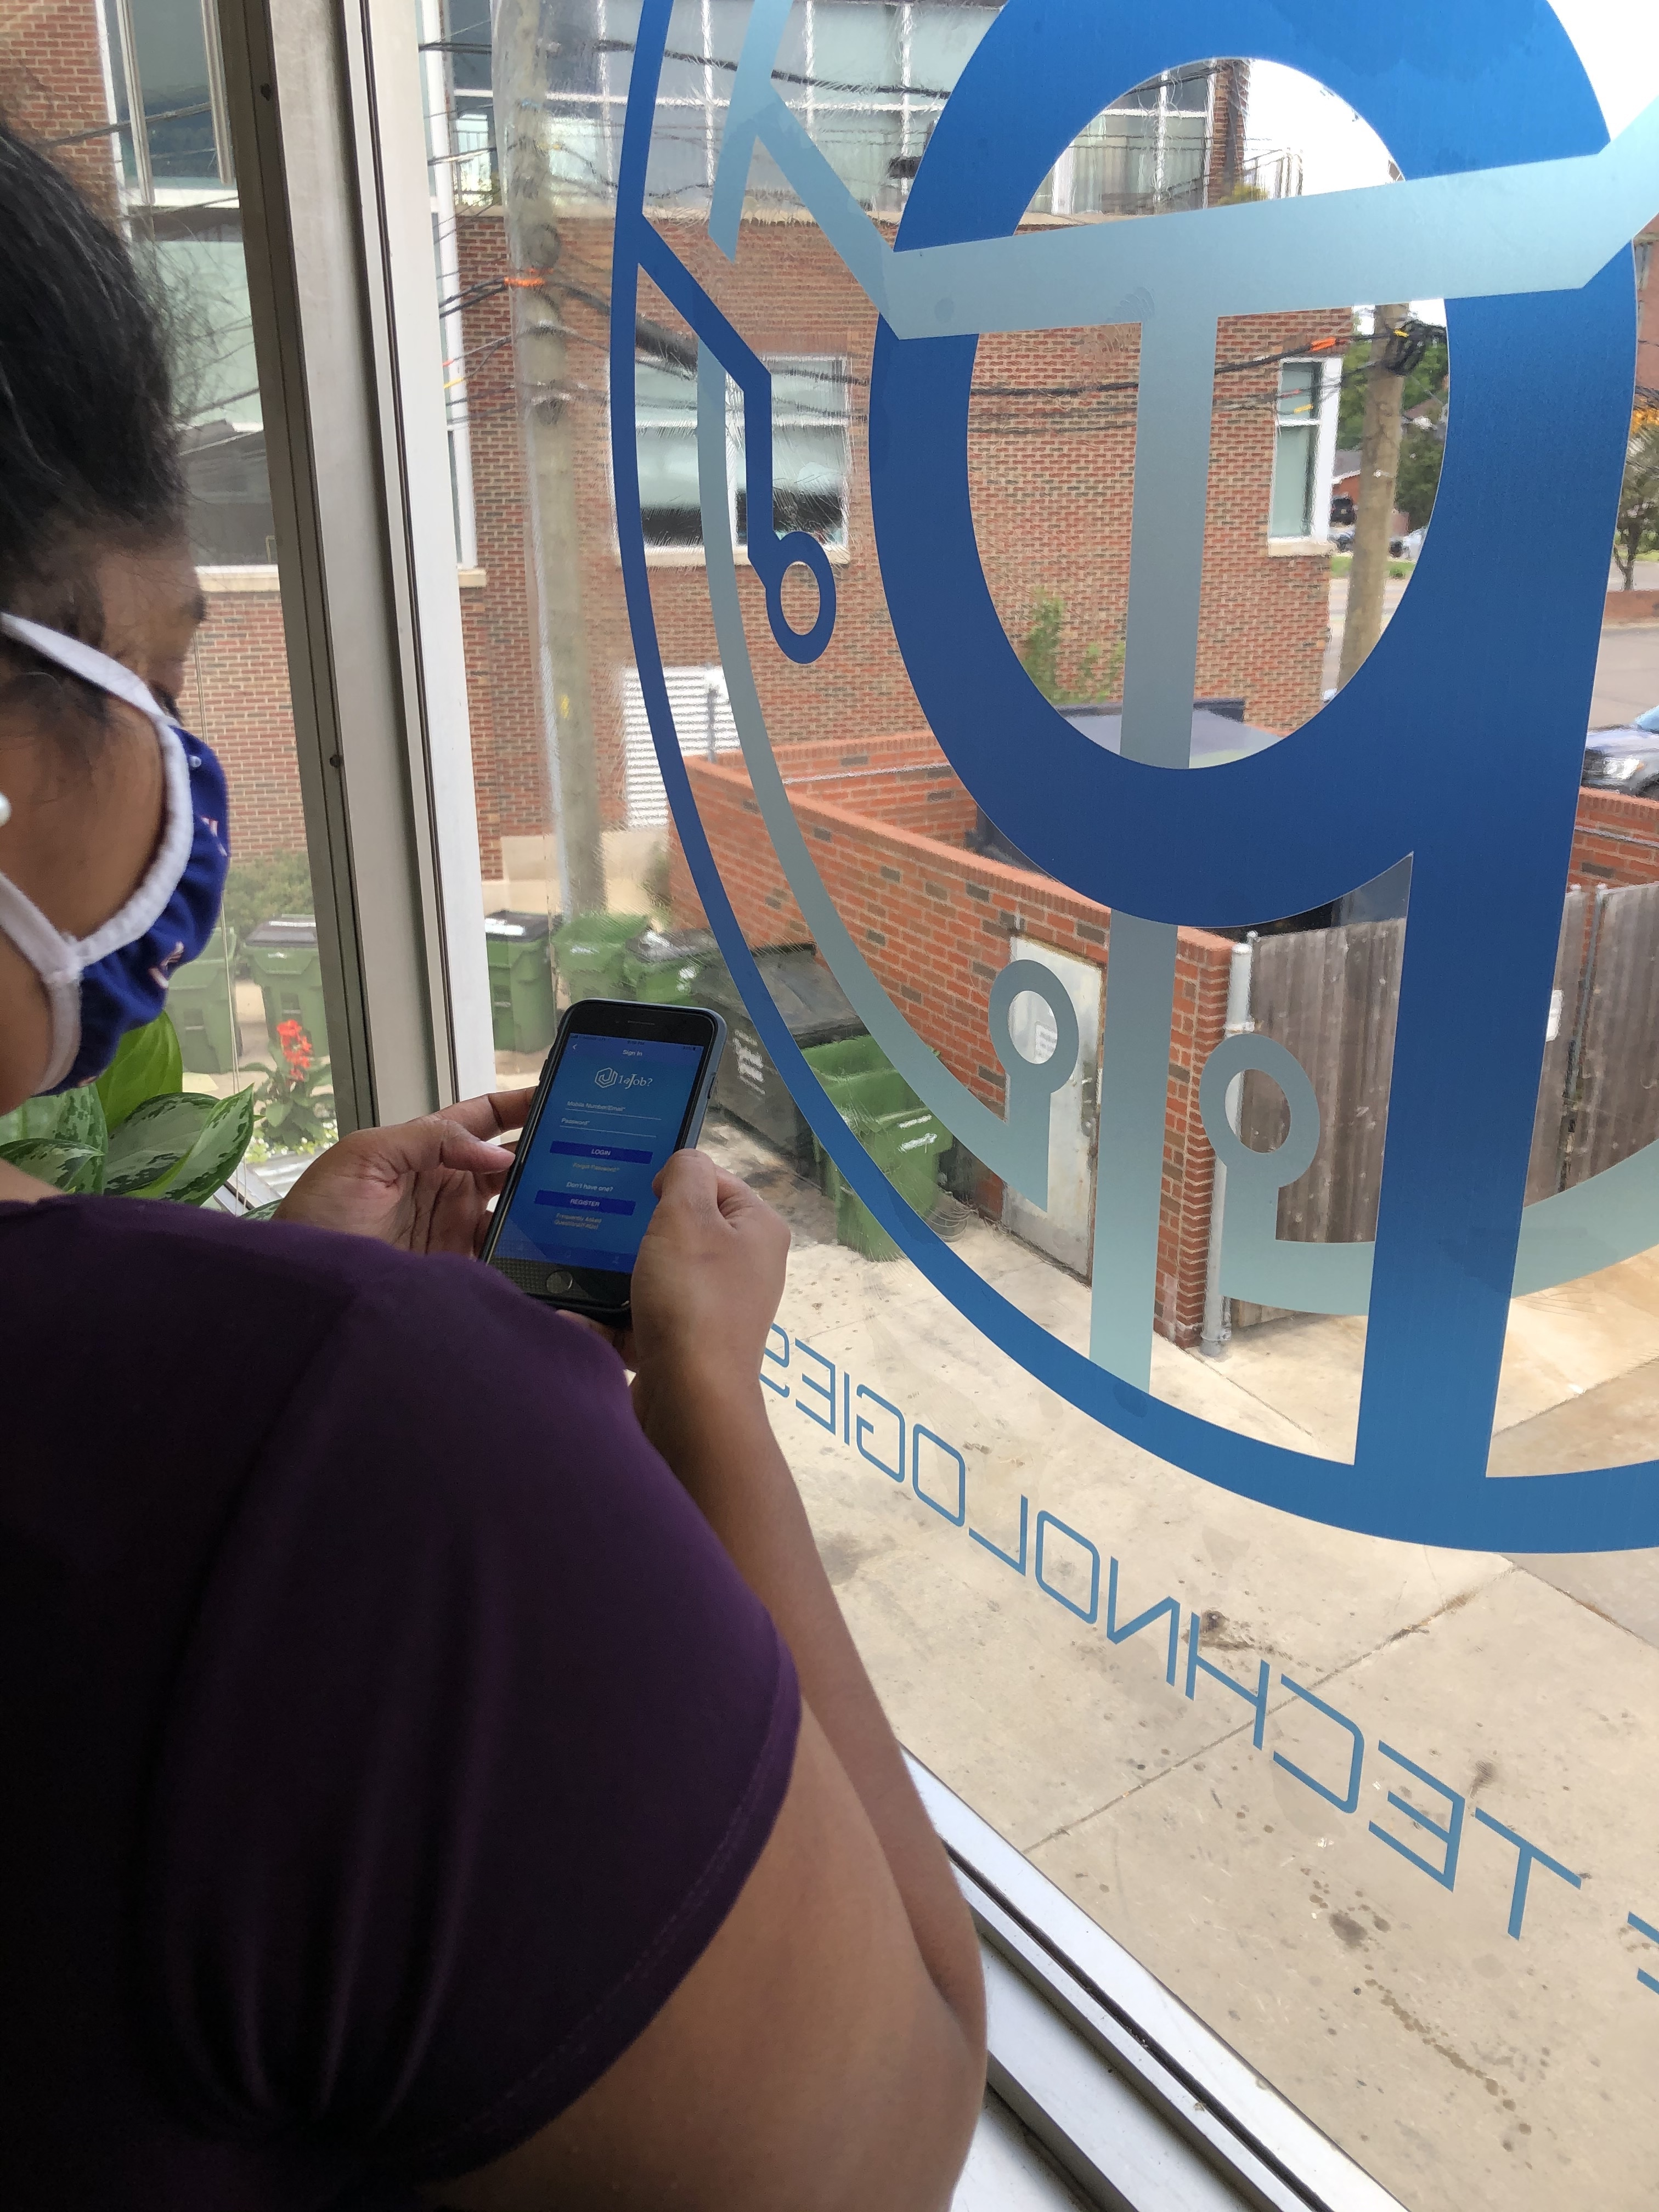 Wanna Job? New Fast, Free App Virtually Connects Job Seekers with Employers Amid COVID-19 Crisis